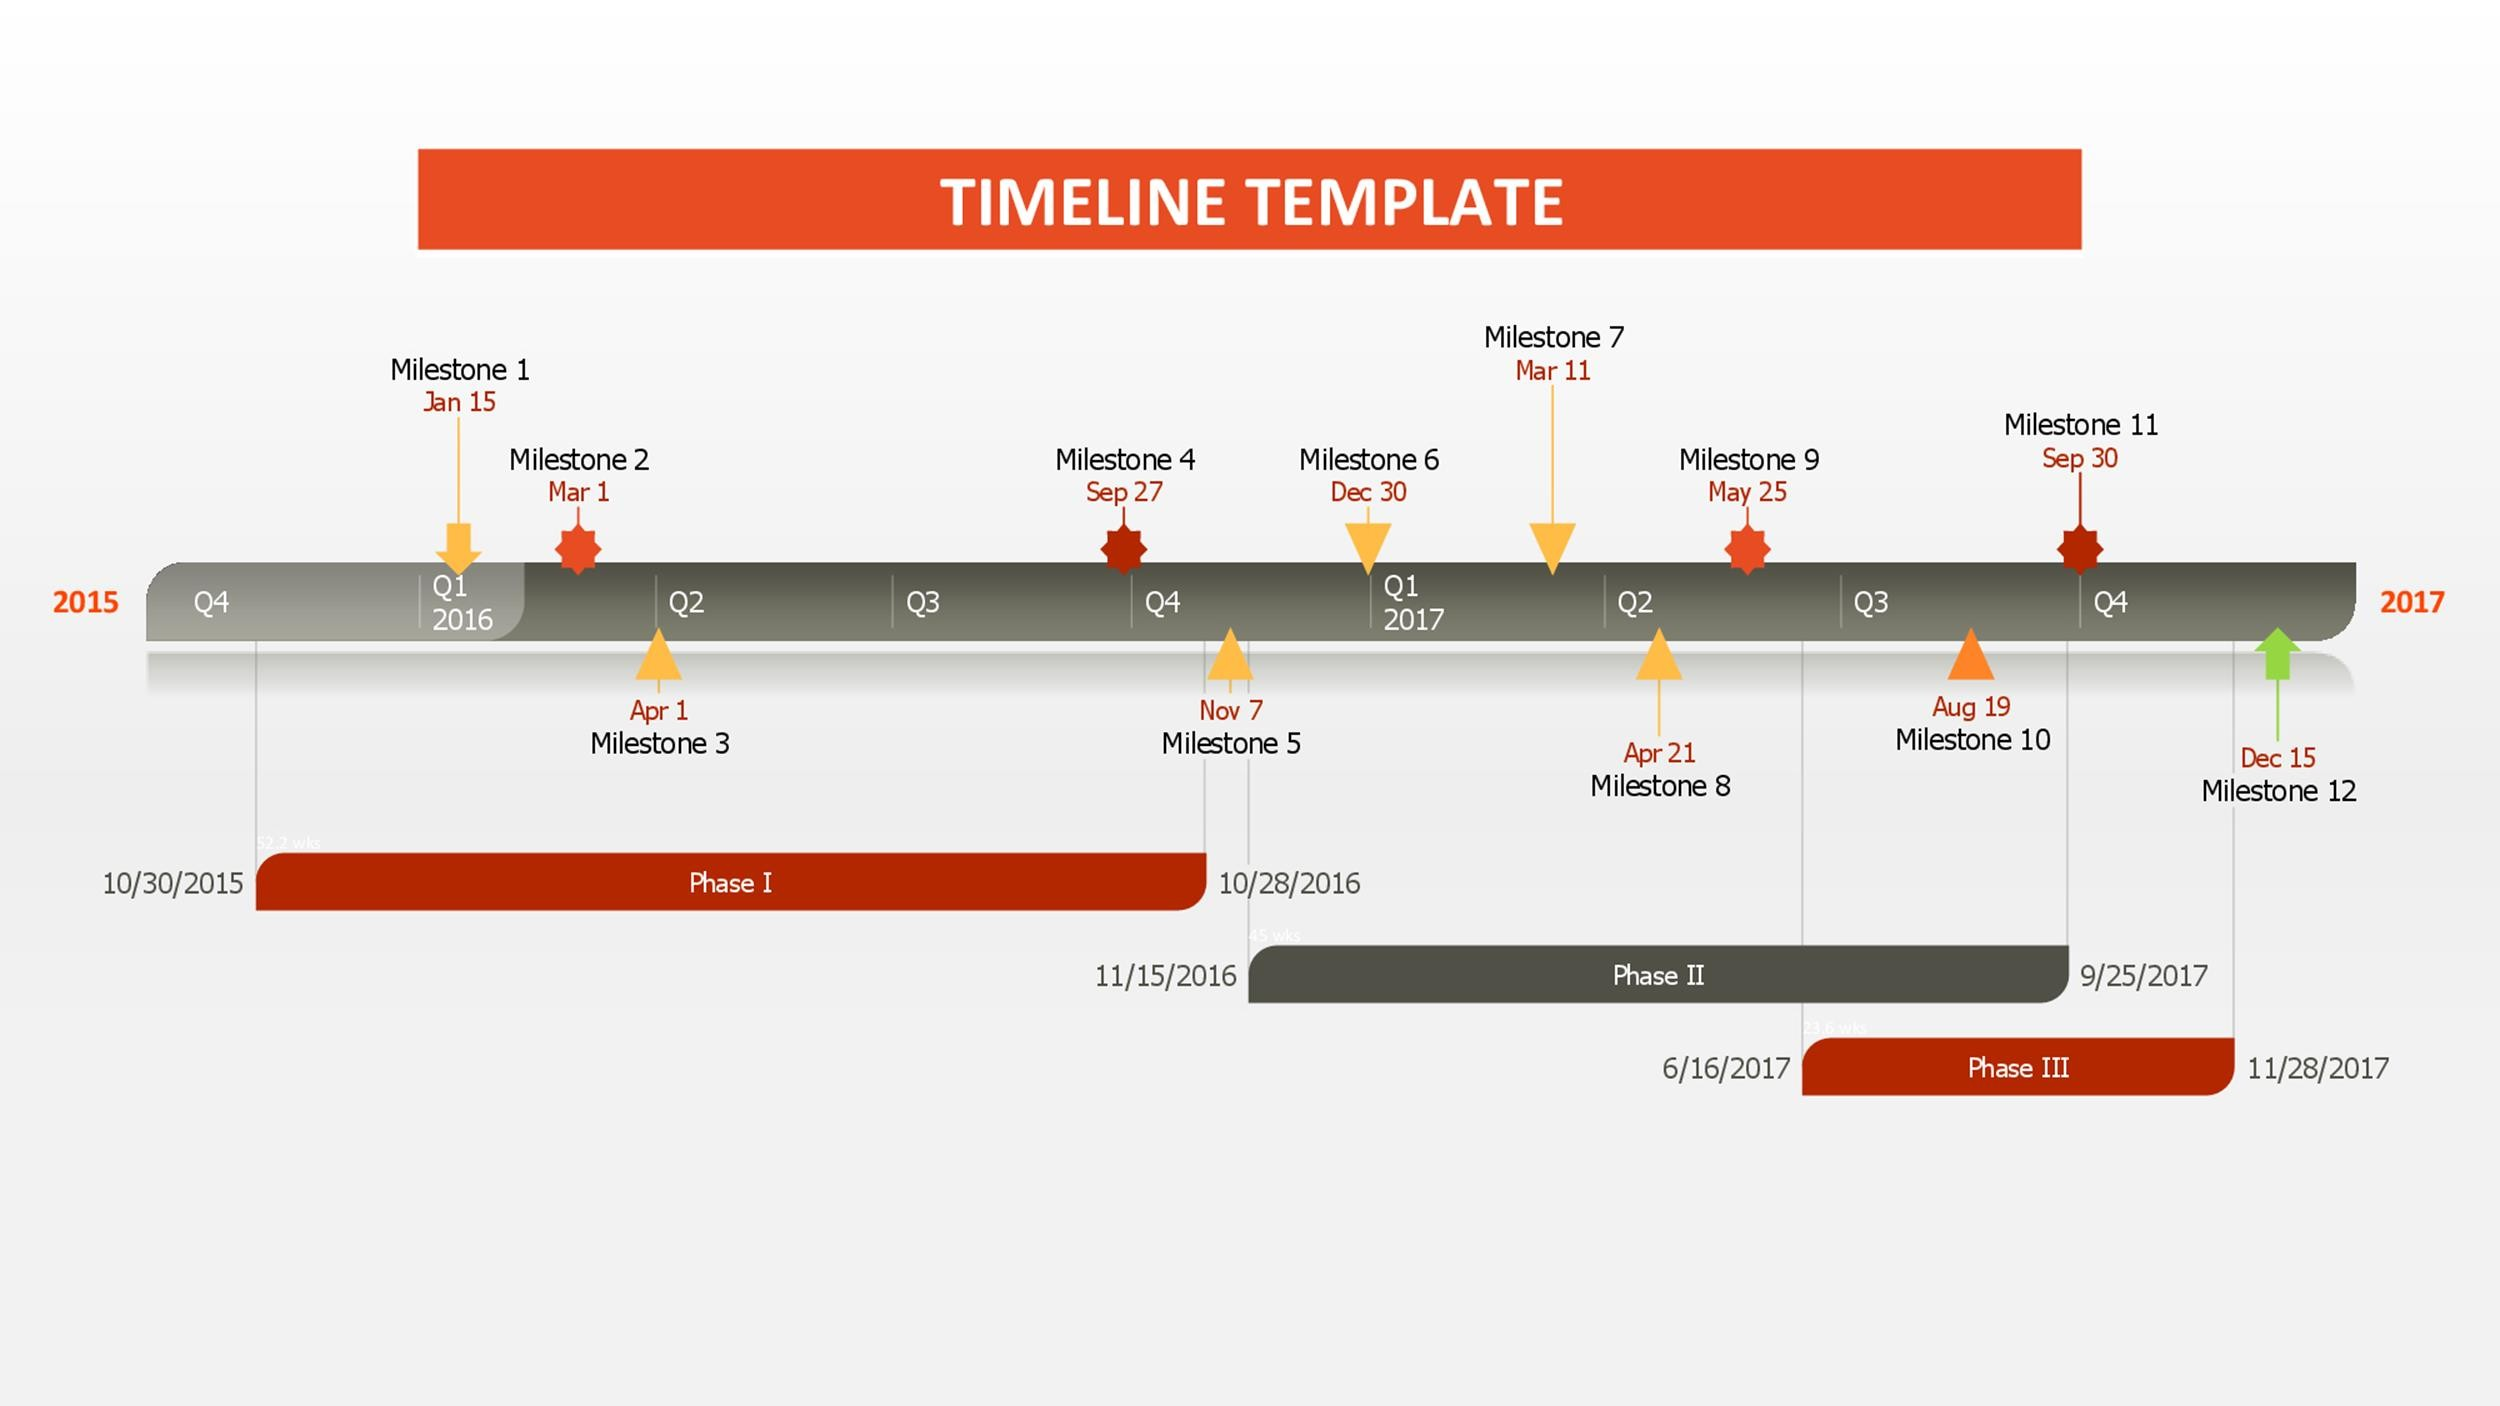 Timeline Templates Excel Power Point Word Template Lab - Microsoft excel timeline template